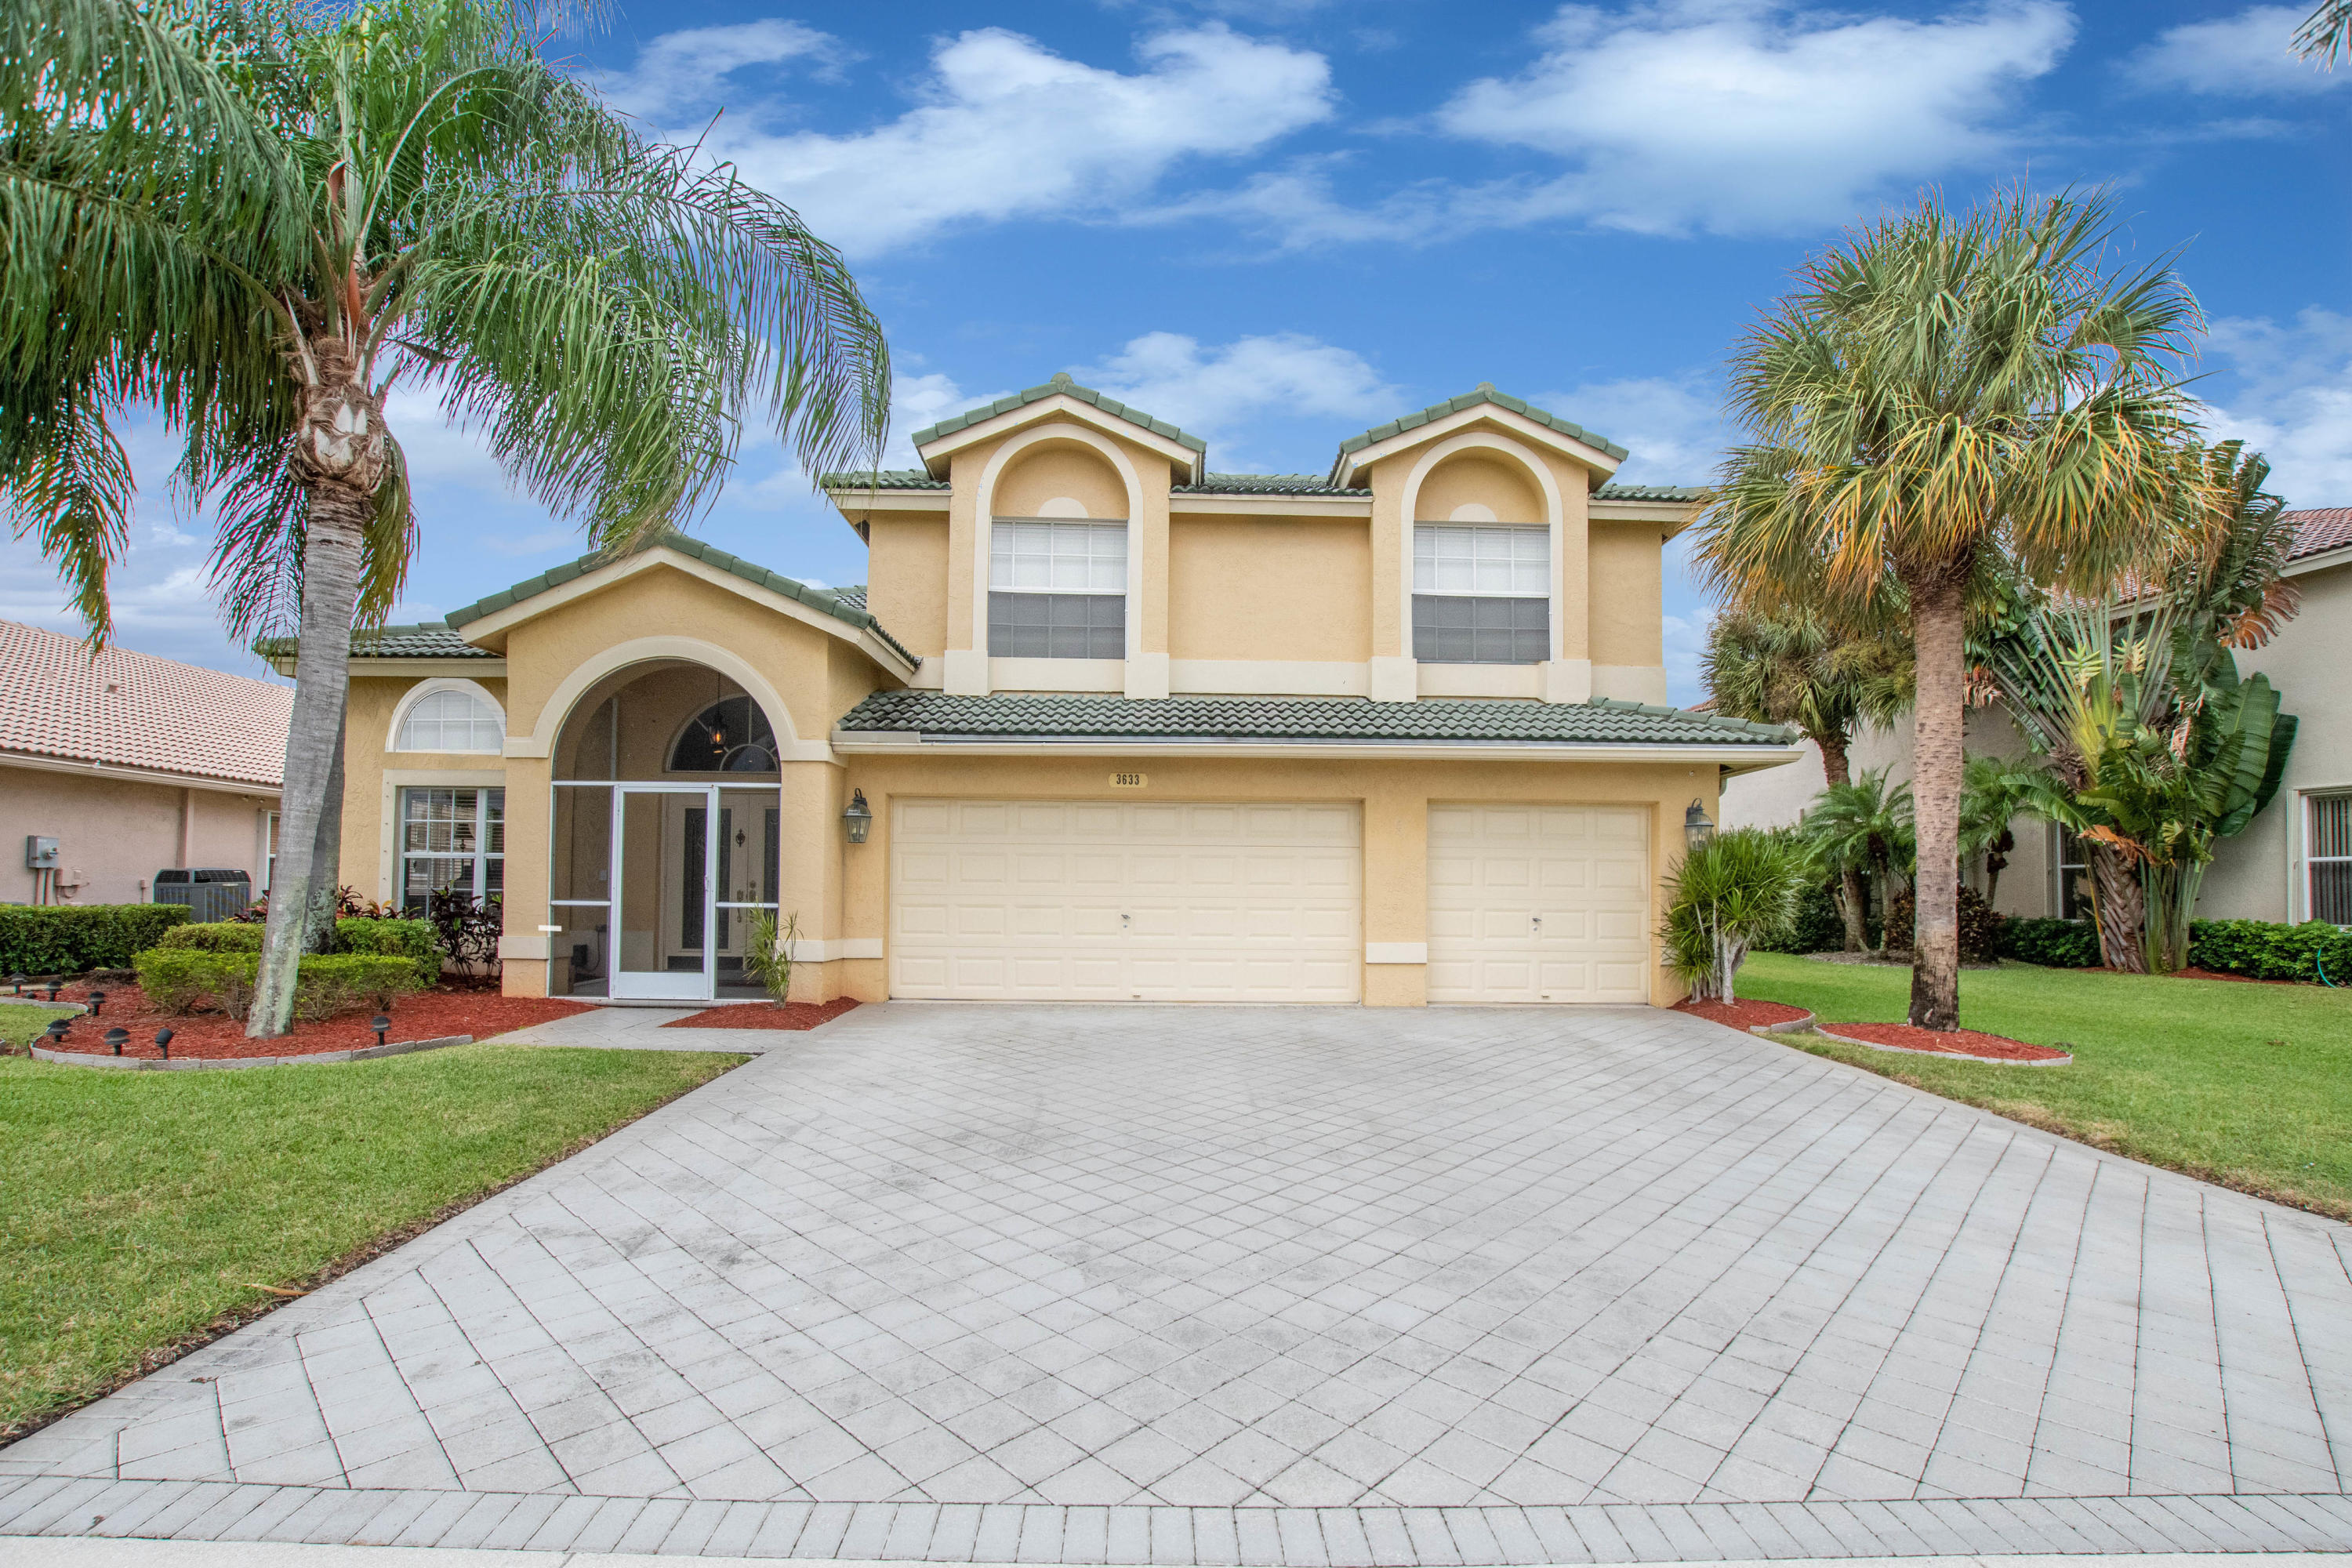 3633 Moon Bay Circle, Wellington, Florida 33414, 4 Bedrooms Bedrooms, ,3 BathroomsBathrooms,Single Family,For Rent,Moon Bay,RX-10567702